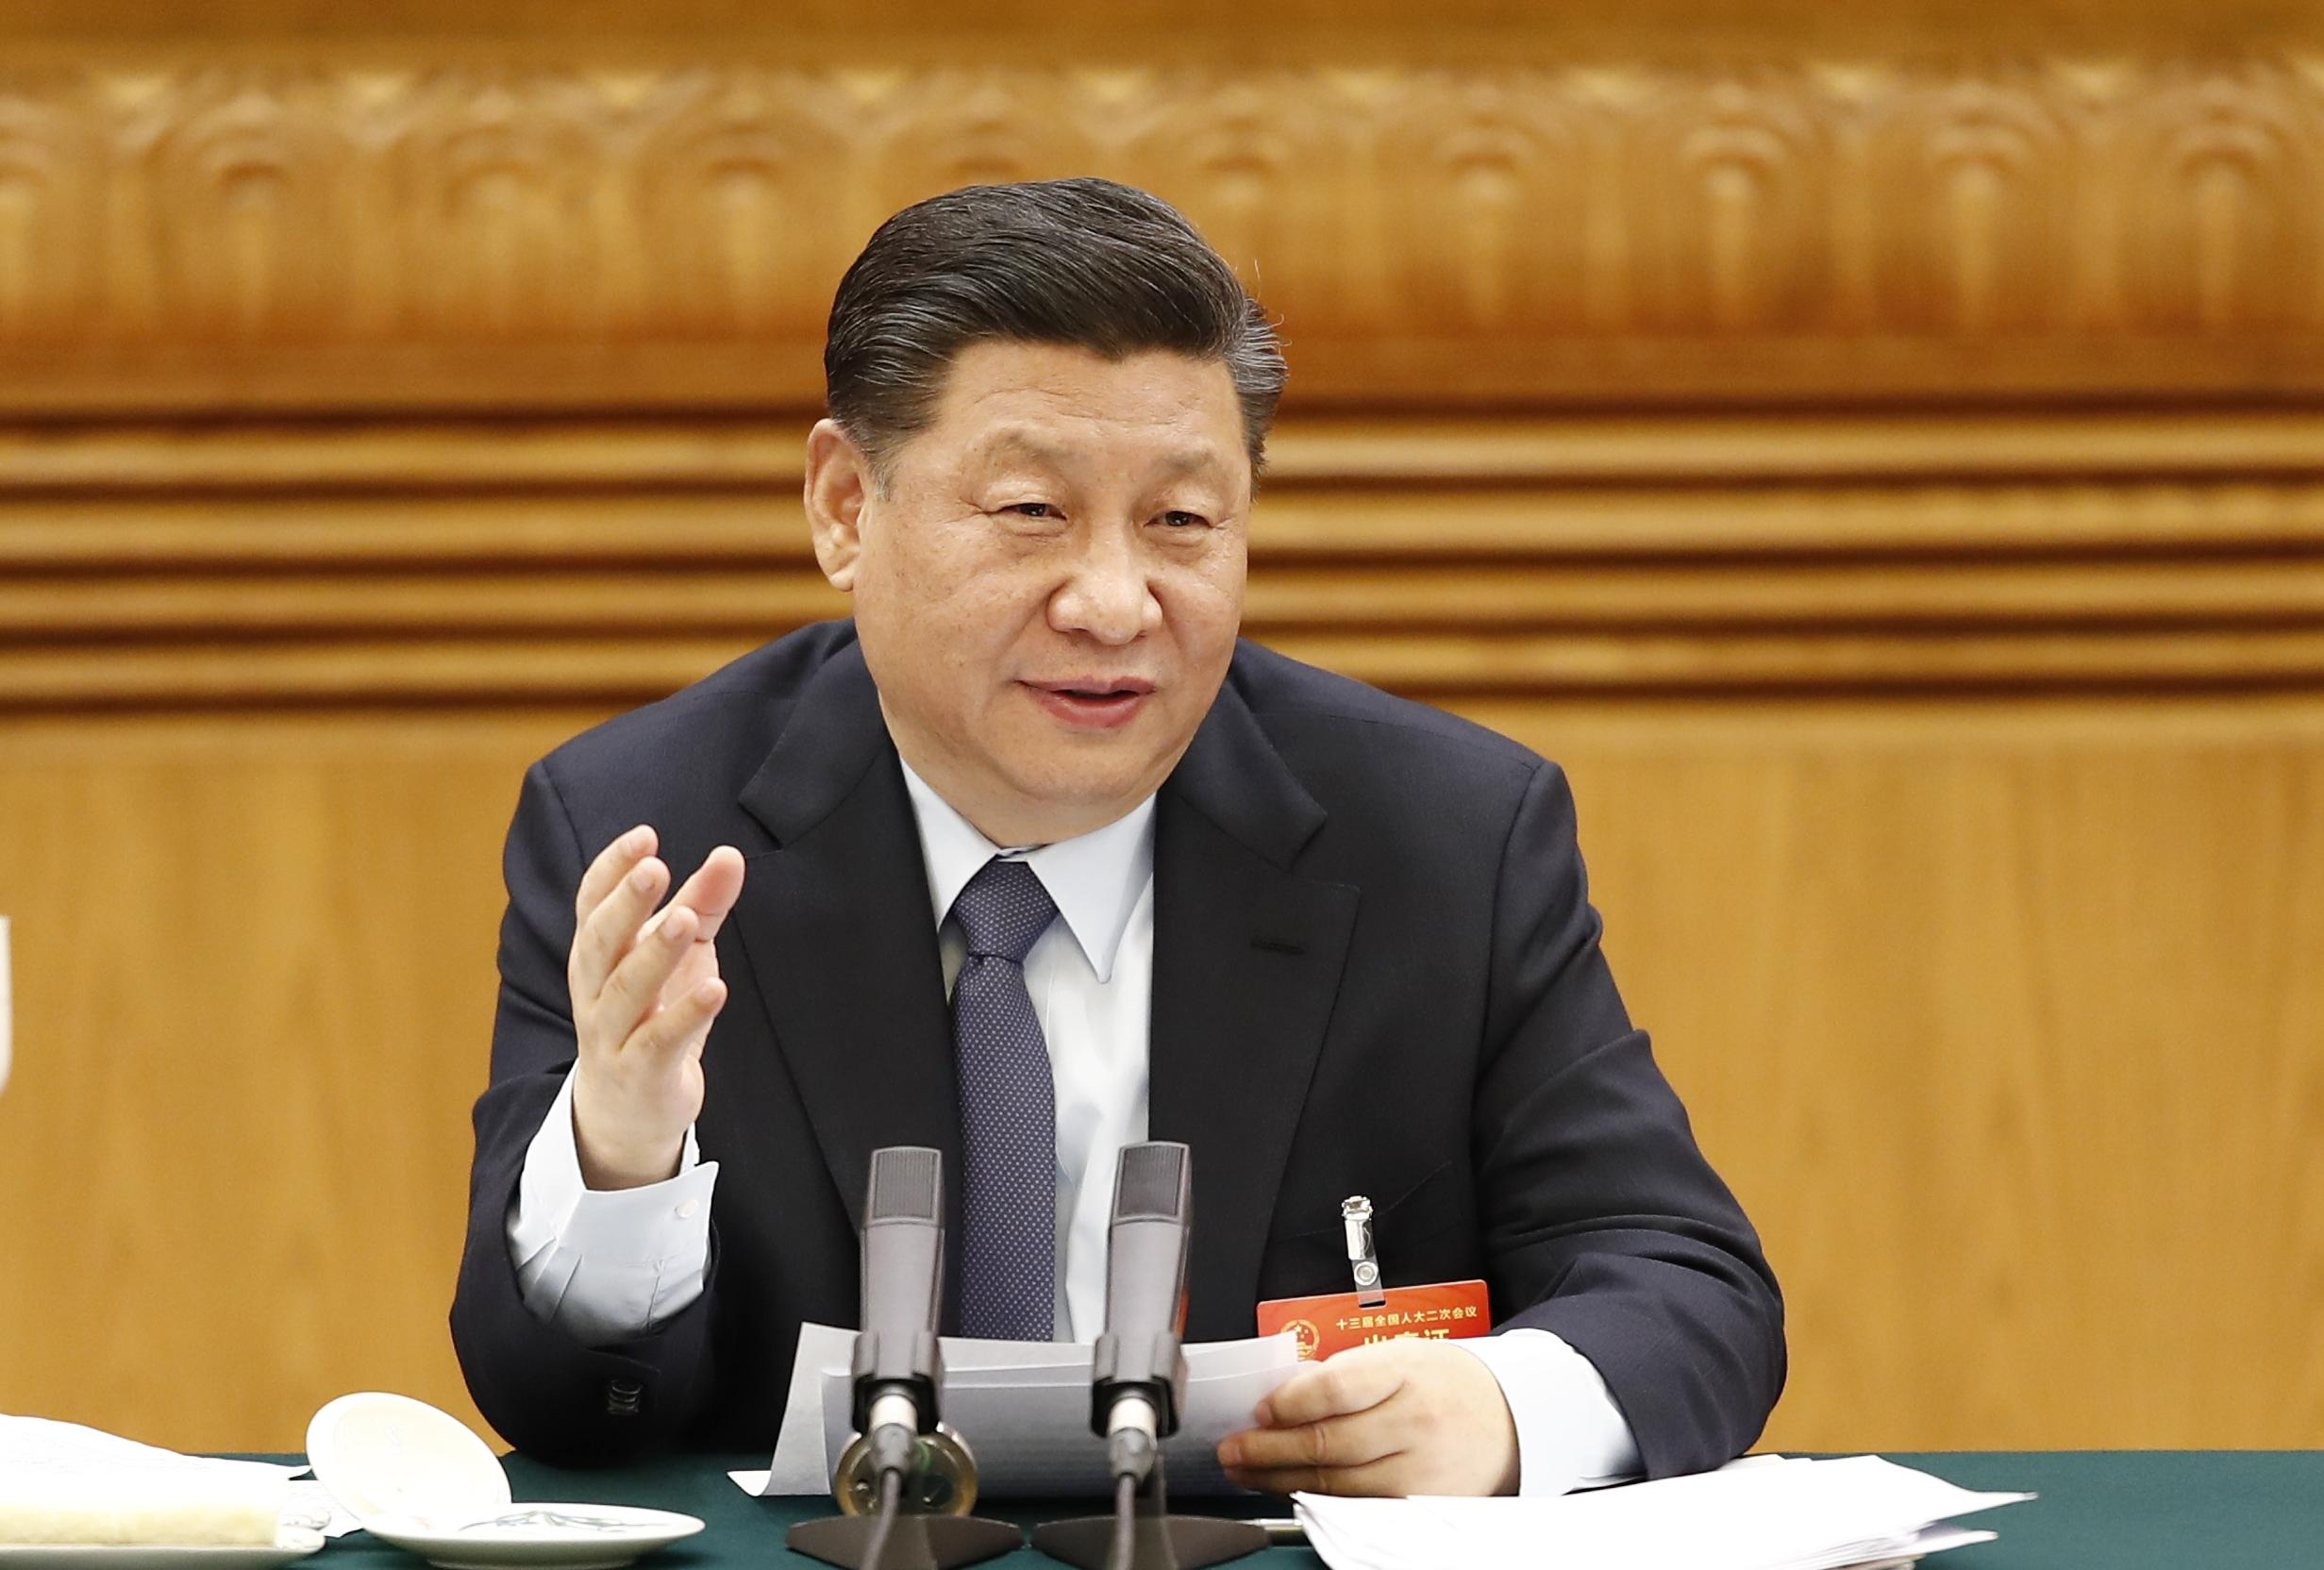 Gray Leap Forward Xi Jinping Shows Natural Hair Color In A Rare Move For Chinese Politics Cnn Style